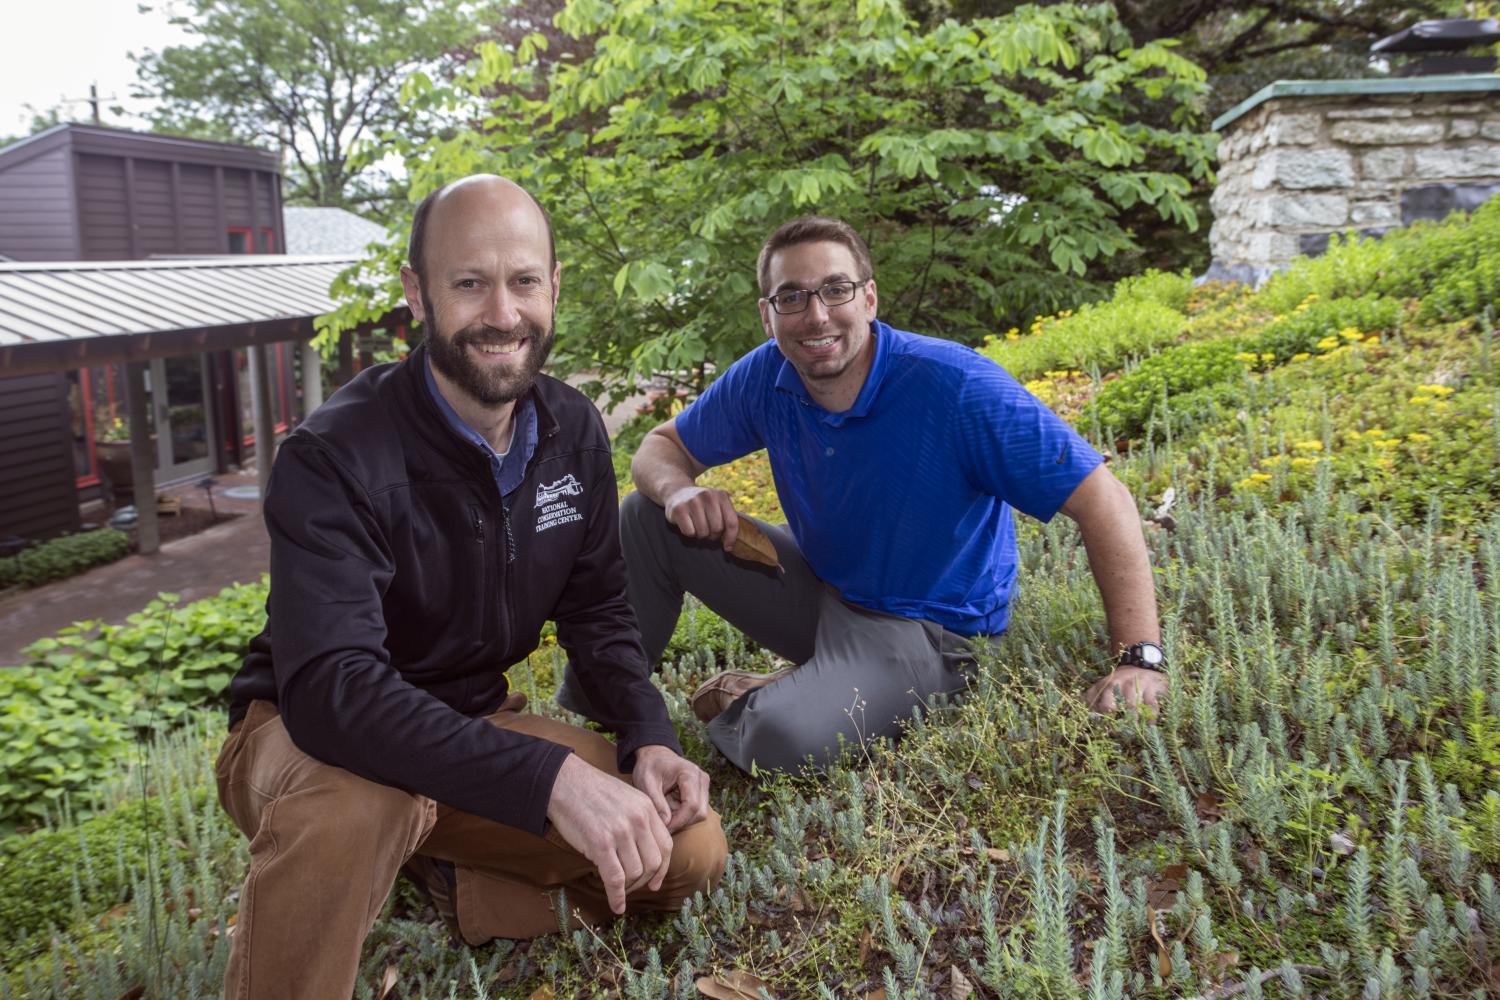 Ishi Buffam And Mark Mitchell Are At One Of The Green Roofs At The Civic Garden  Center Of Greater Cincinnati. Credit: Andrew Higley/University Of Cincinnati